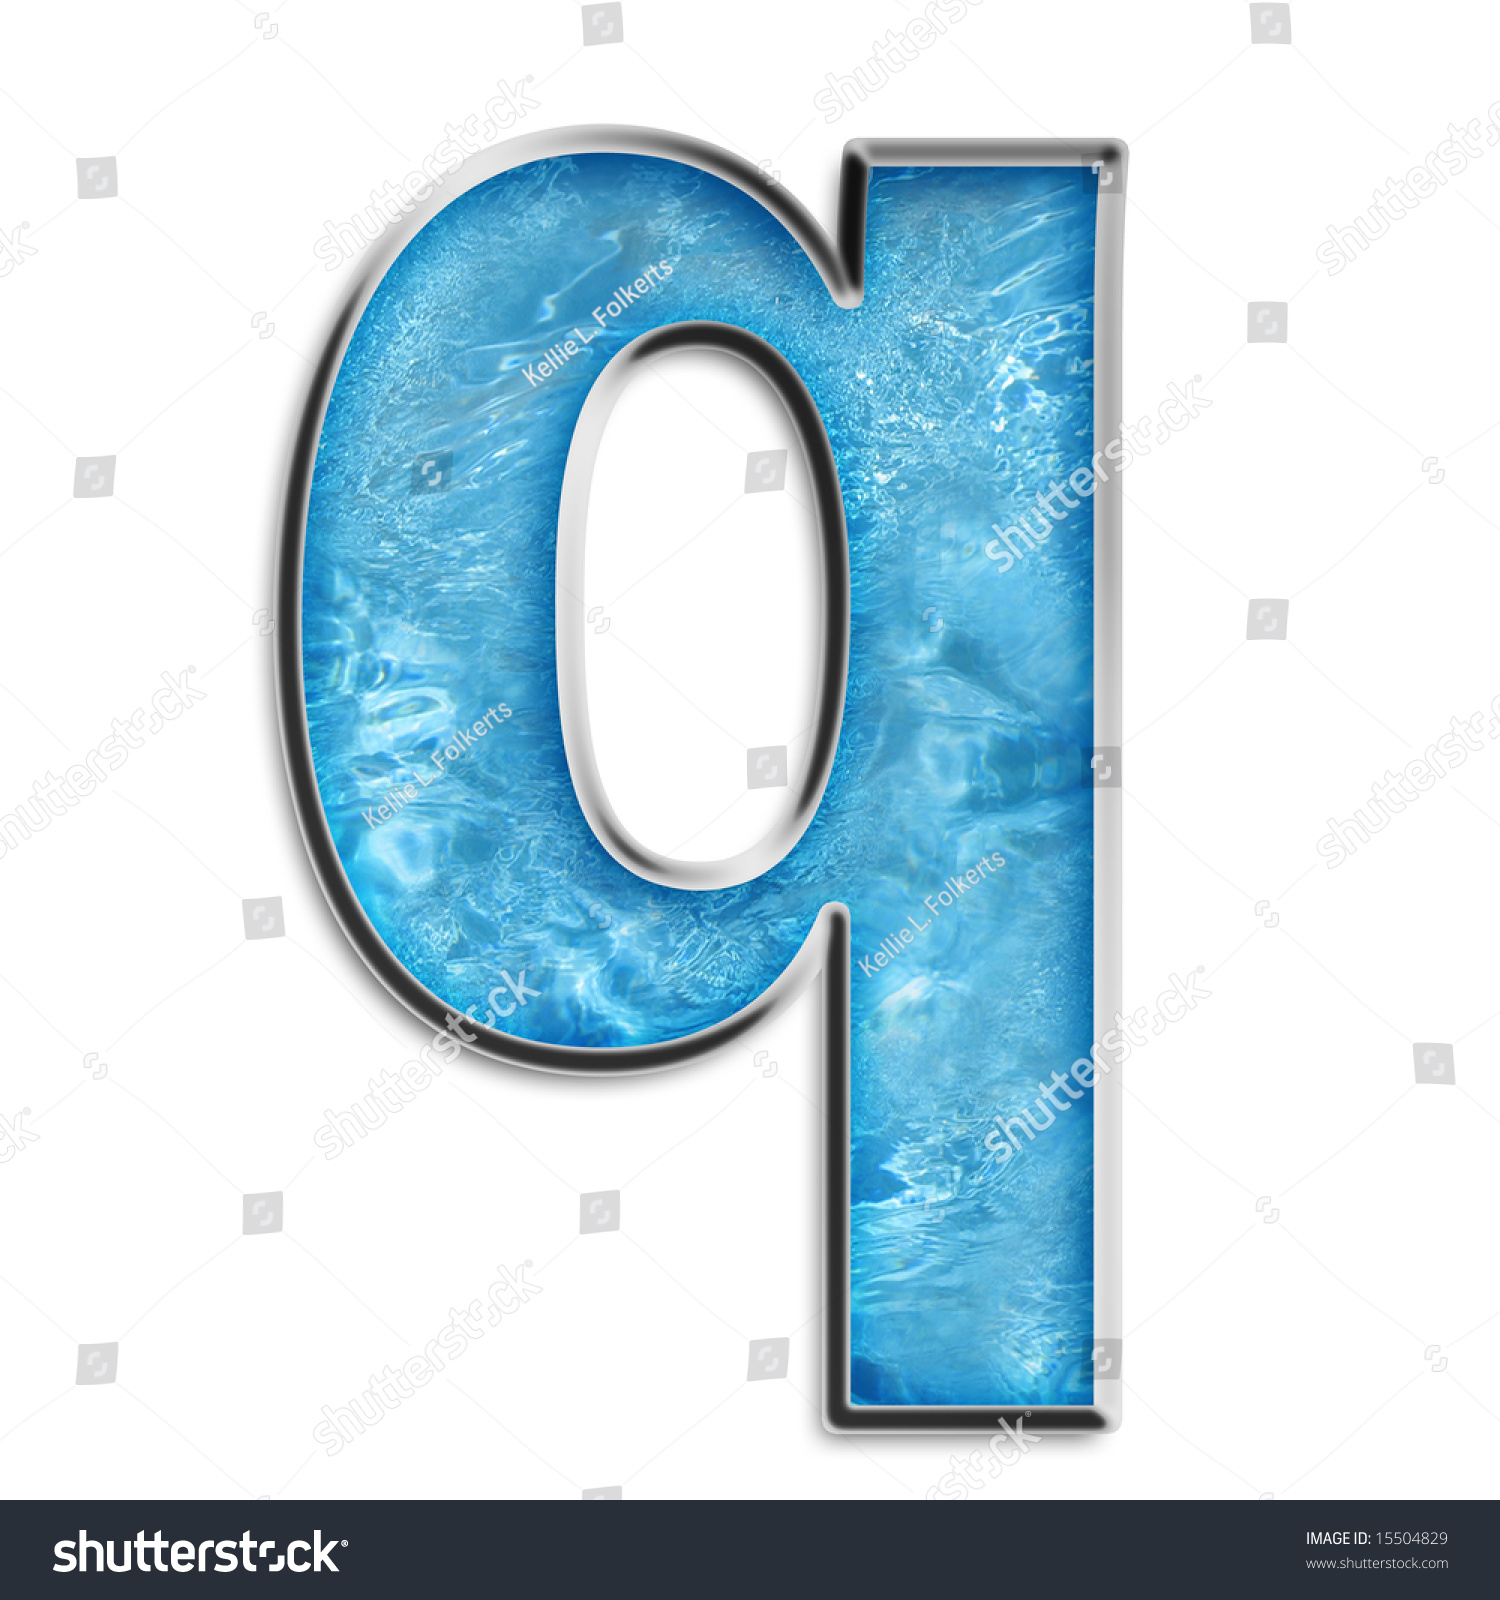 Lowercase q in shimmery blue isolated on white